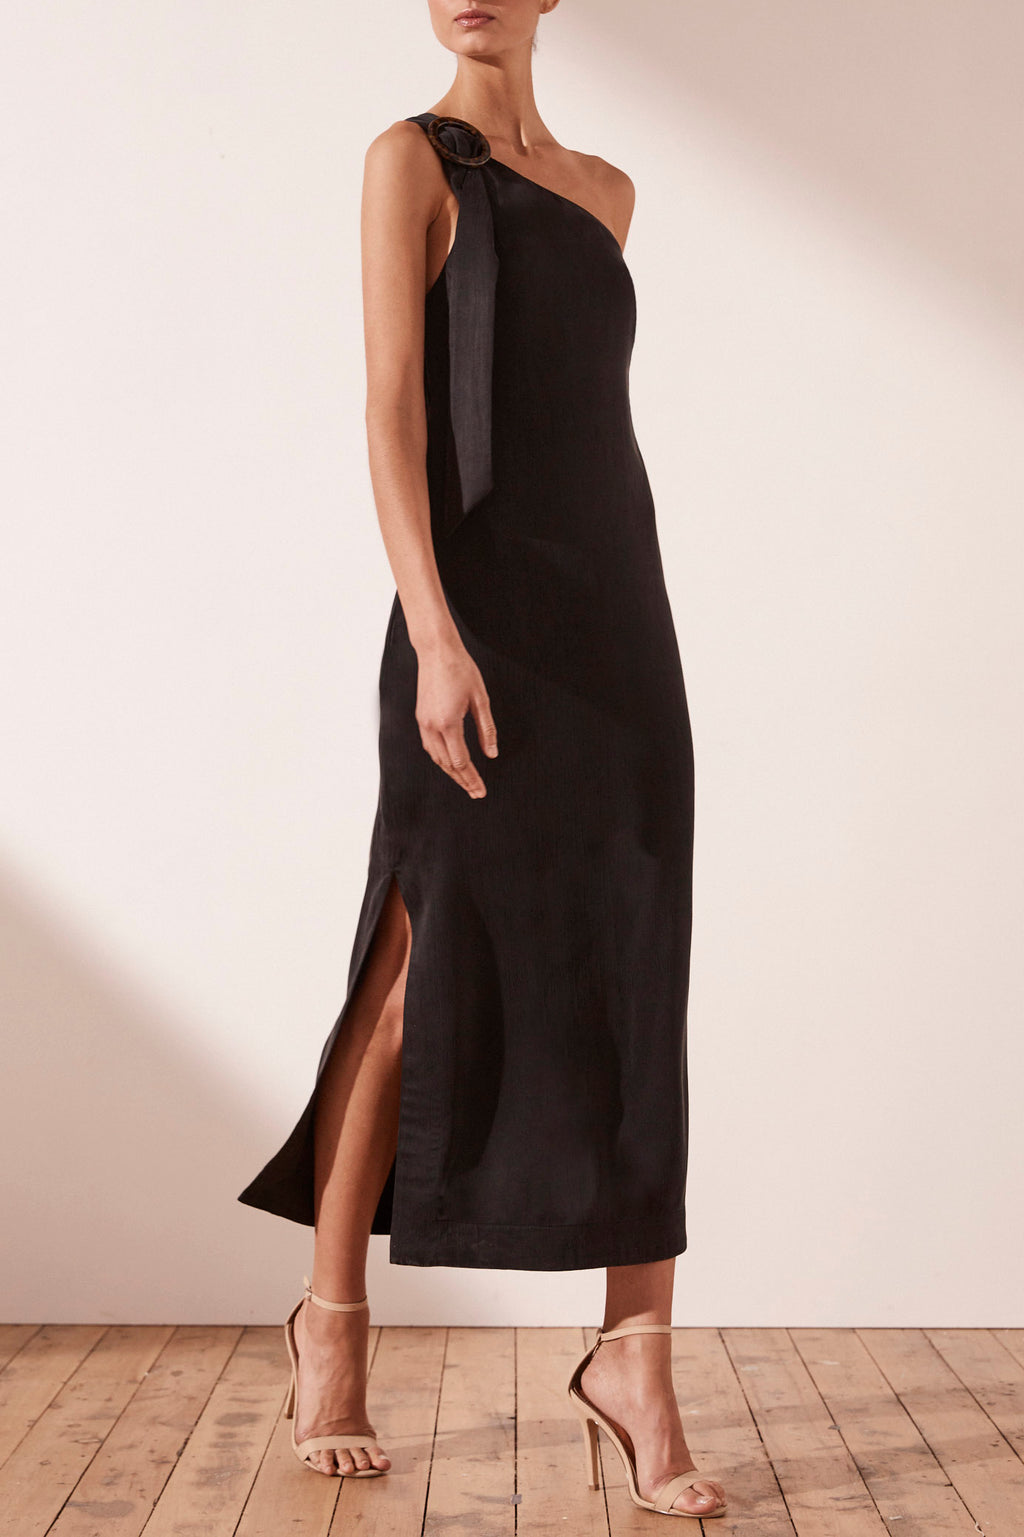 Shona Joy Matias One Shoulder Black Midi Dress